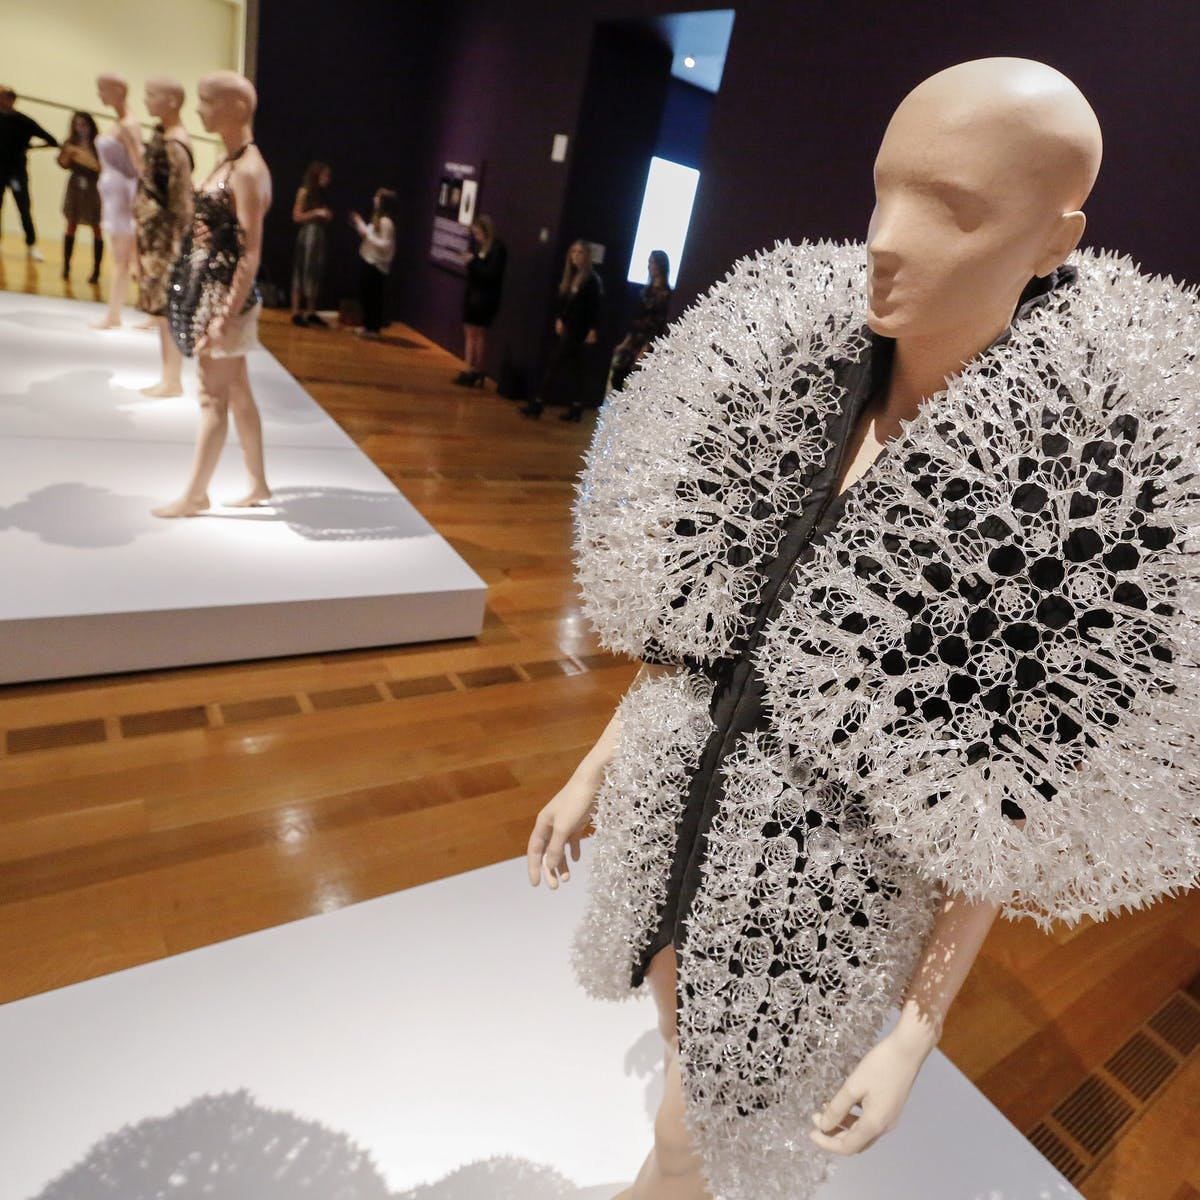 Why Stem Subjects And Fashion Design Go Hand In Hand